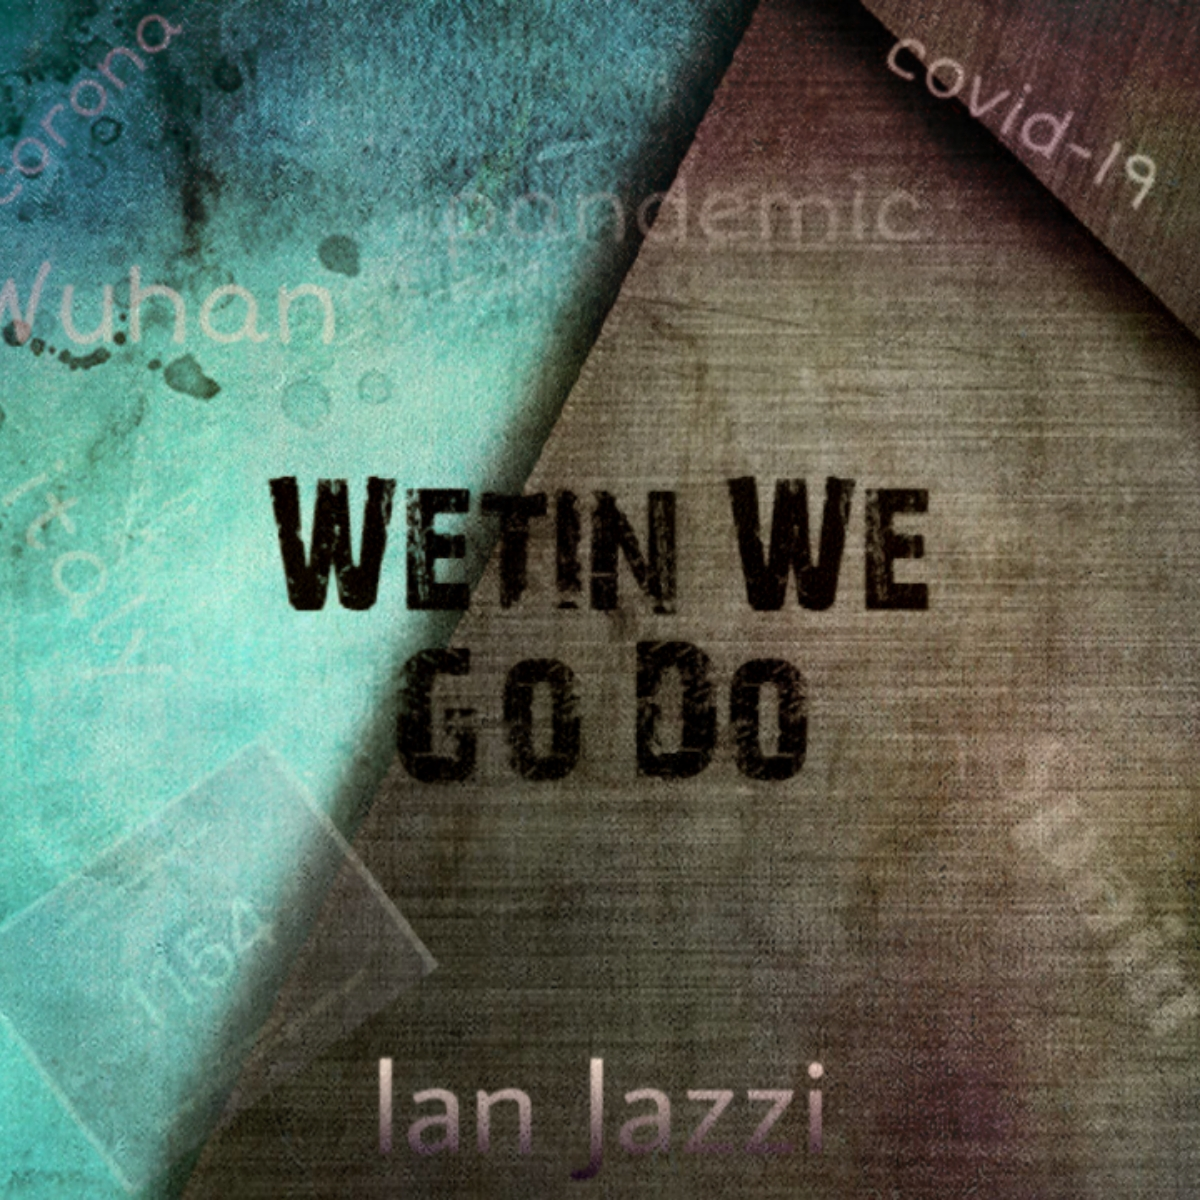 Ian Jazzi – Wetin We Go Do